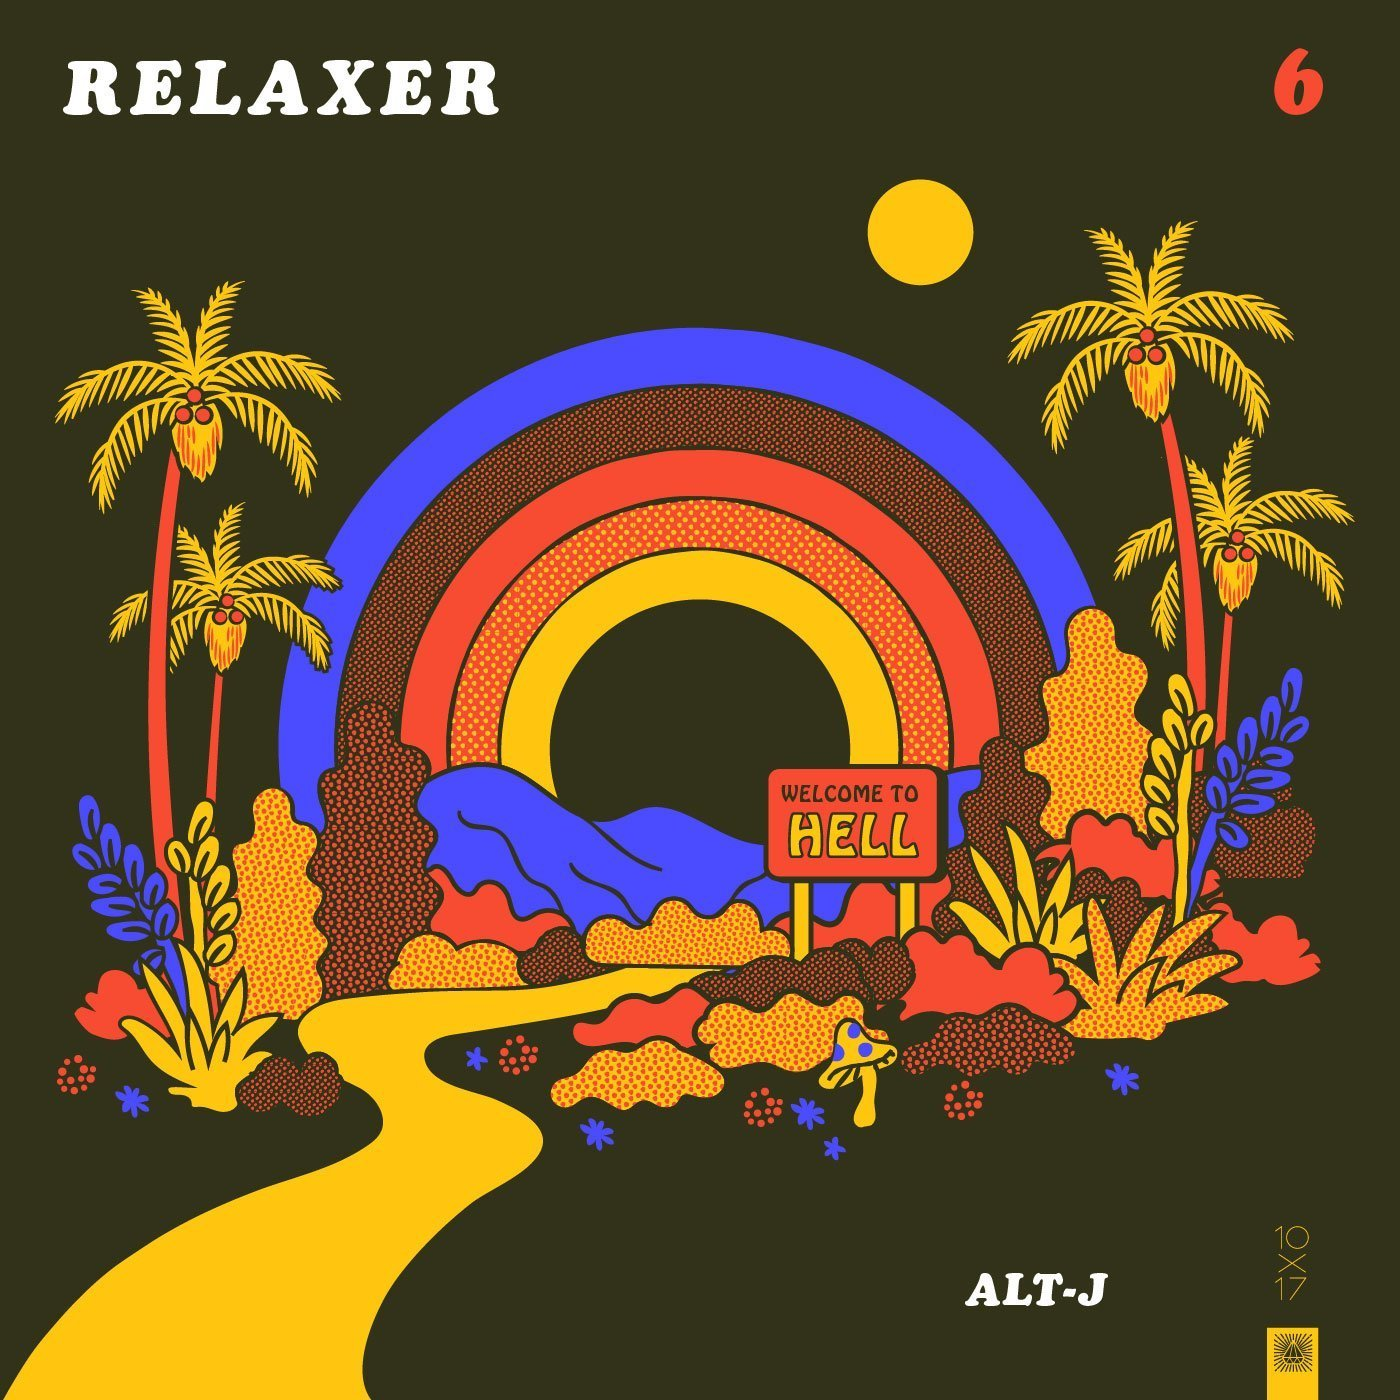 Alt-J Album Cover Reimagined by Amy Hood - Island scene with palm trees and rainbow